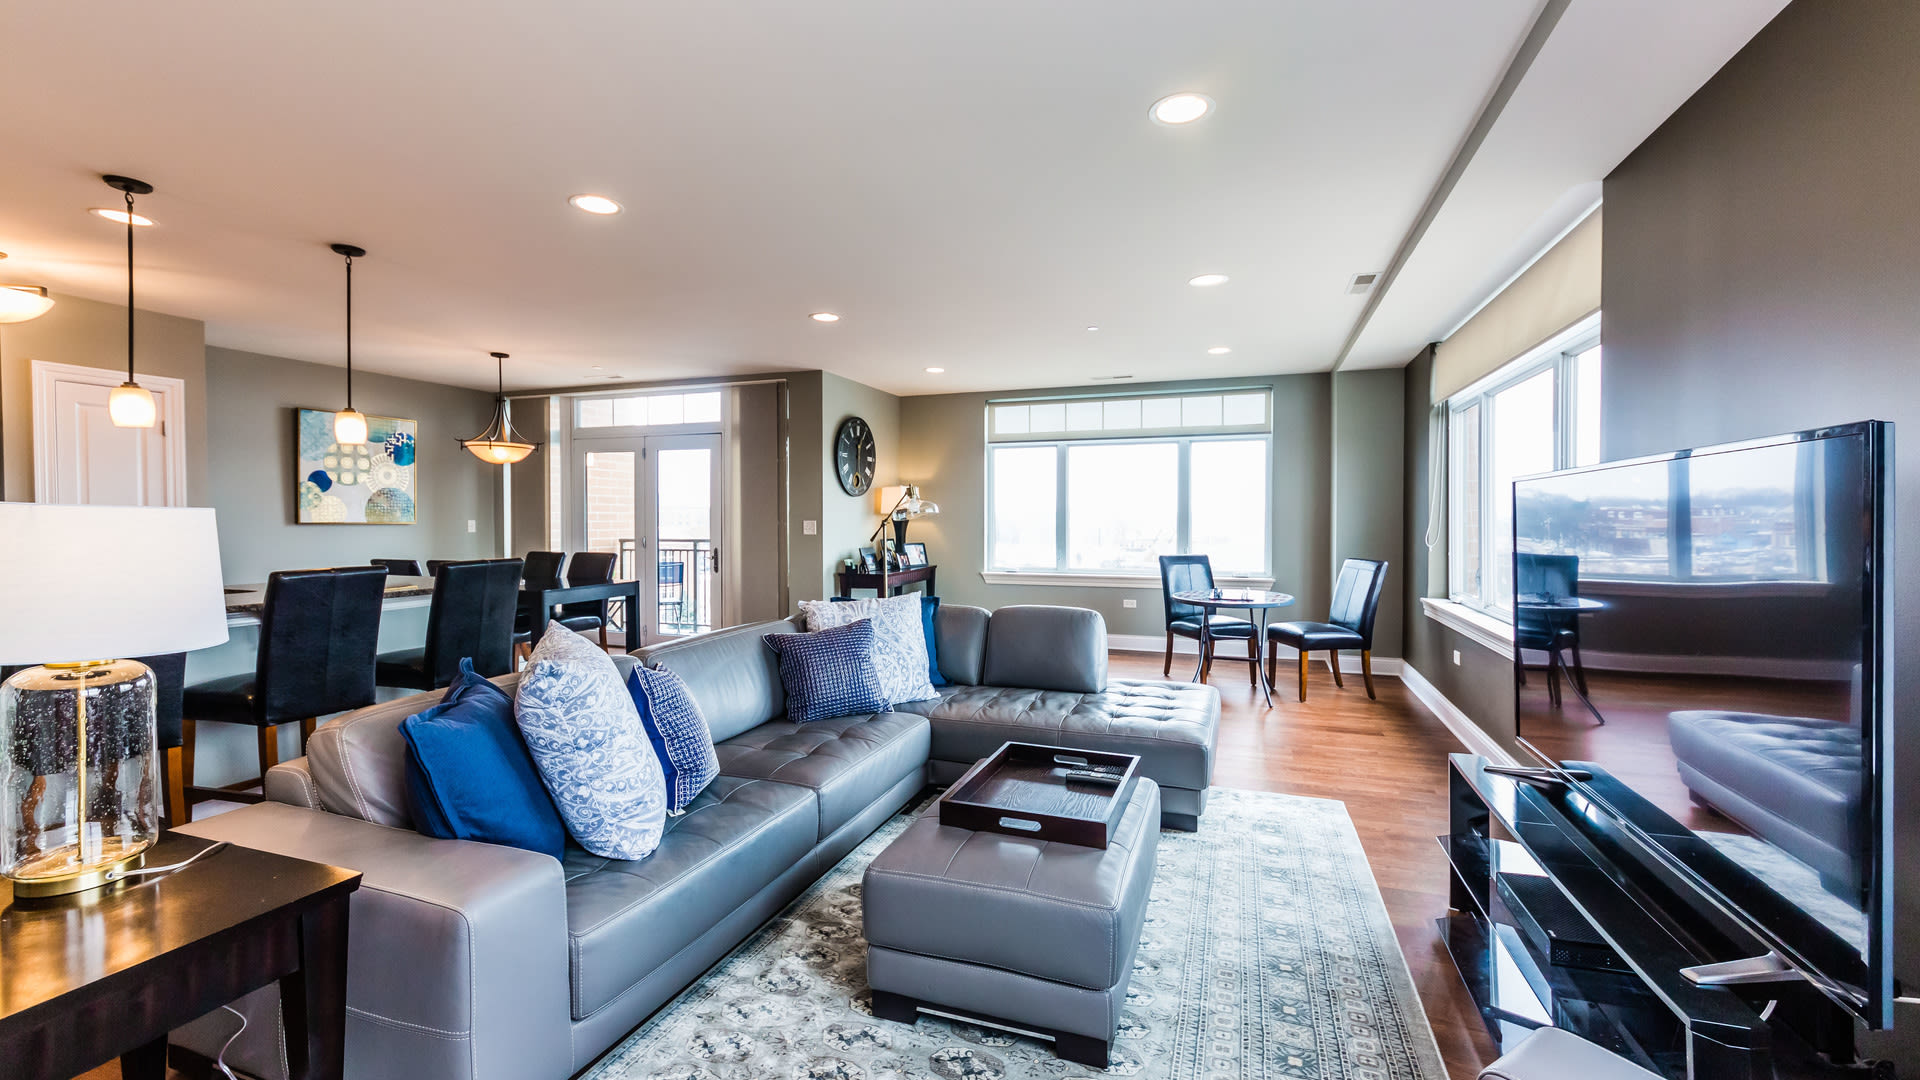 Open House, 600 w Touhy #306, Park Ridge, IL 60068 Sunday, February 25, 2018 from 1-3pm